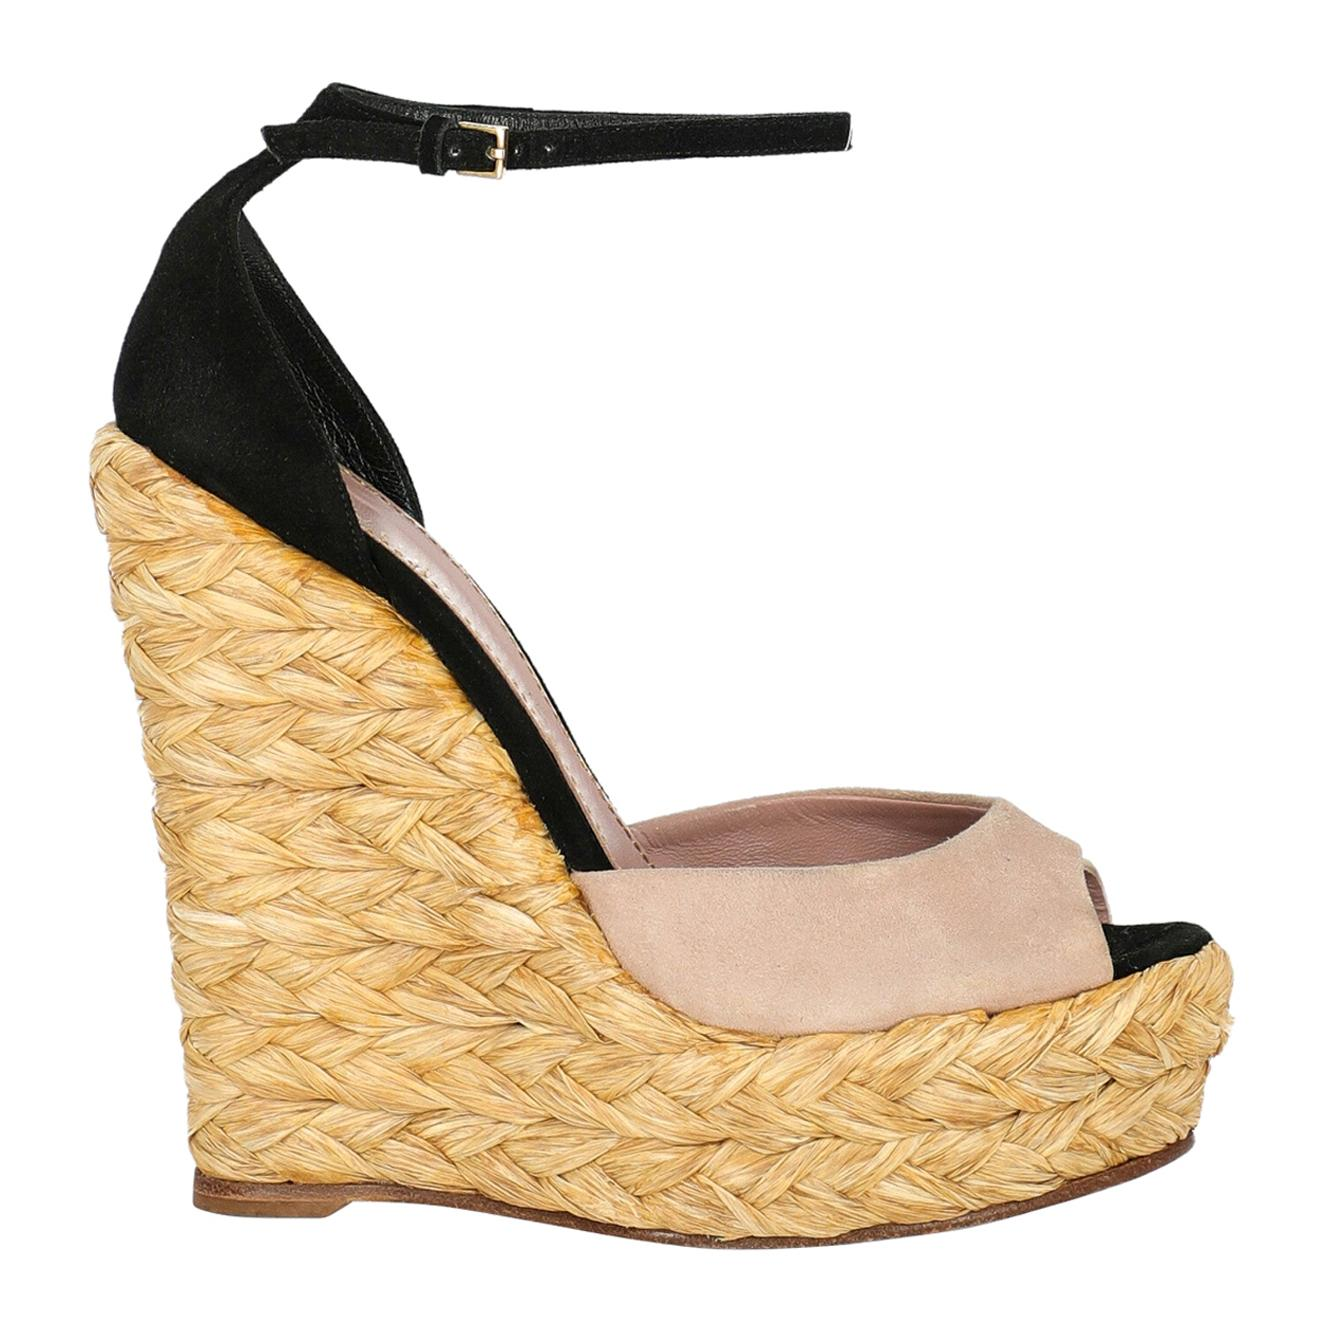 Gucci Woman Wedges Black Leather IT 36